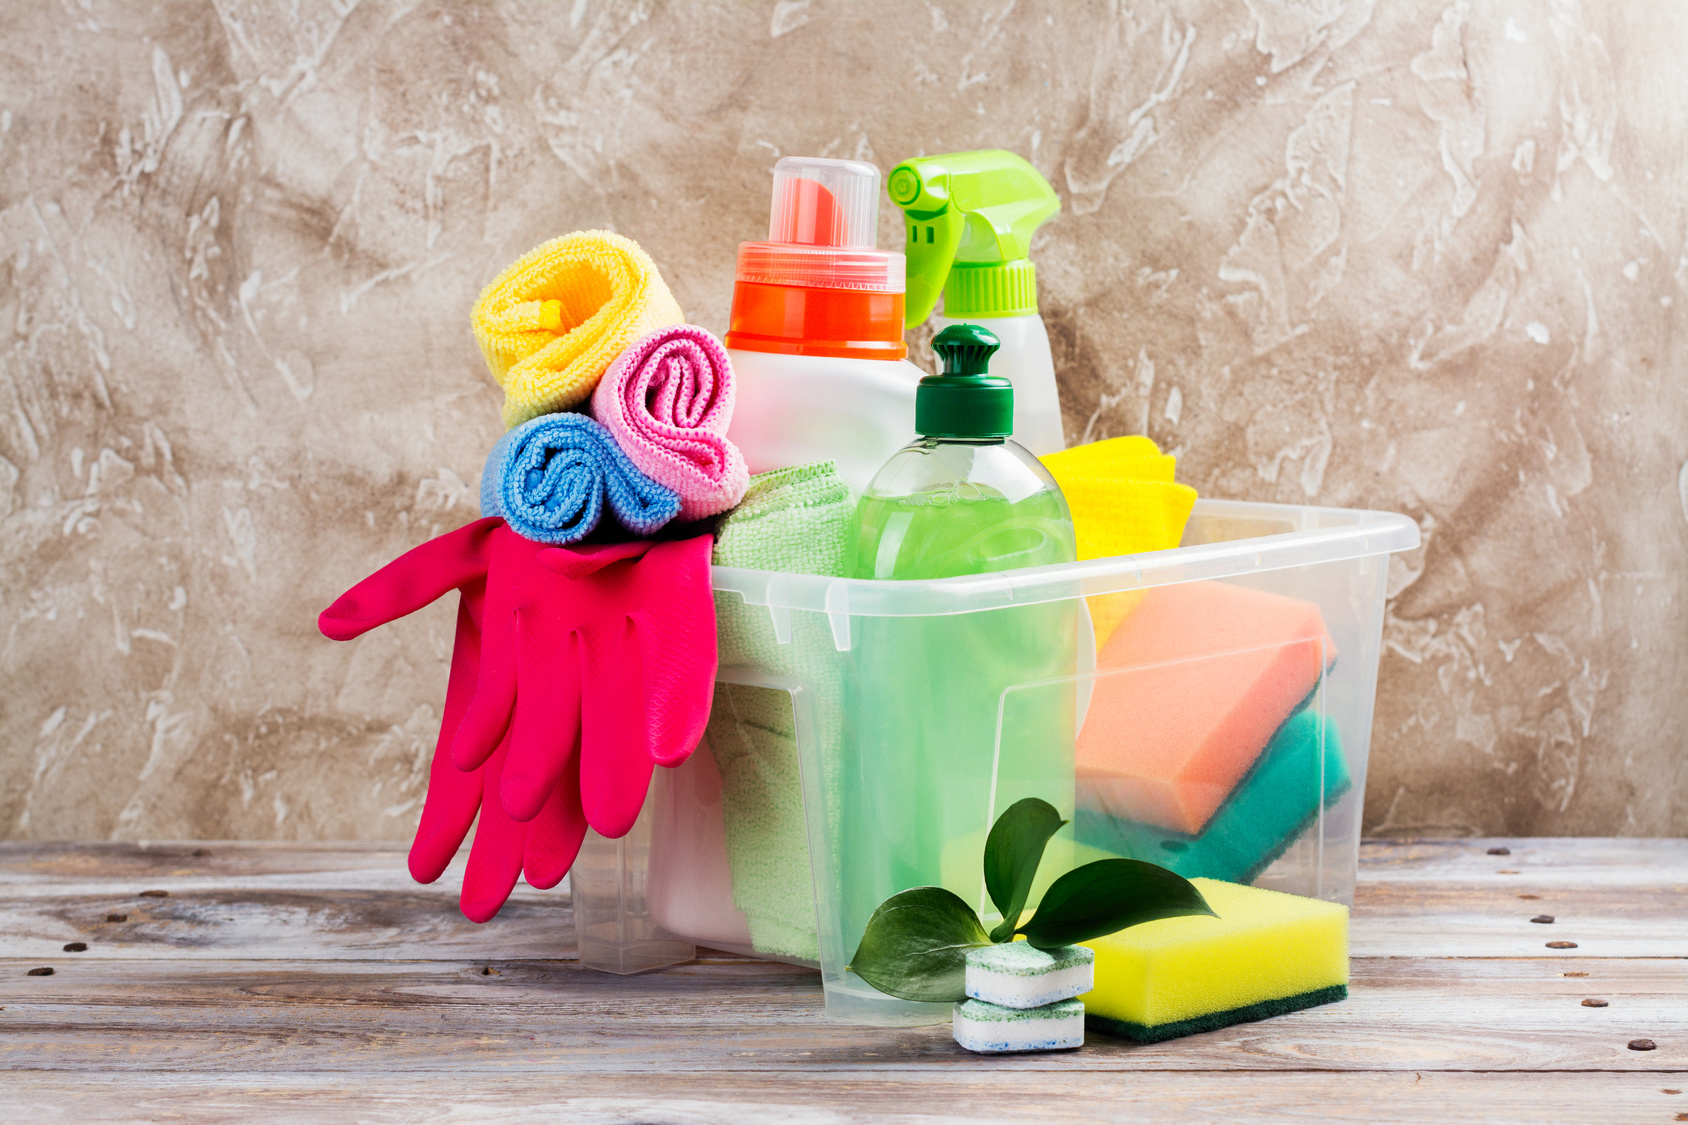 Get Ready for Spring! Cleaning Safely